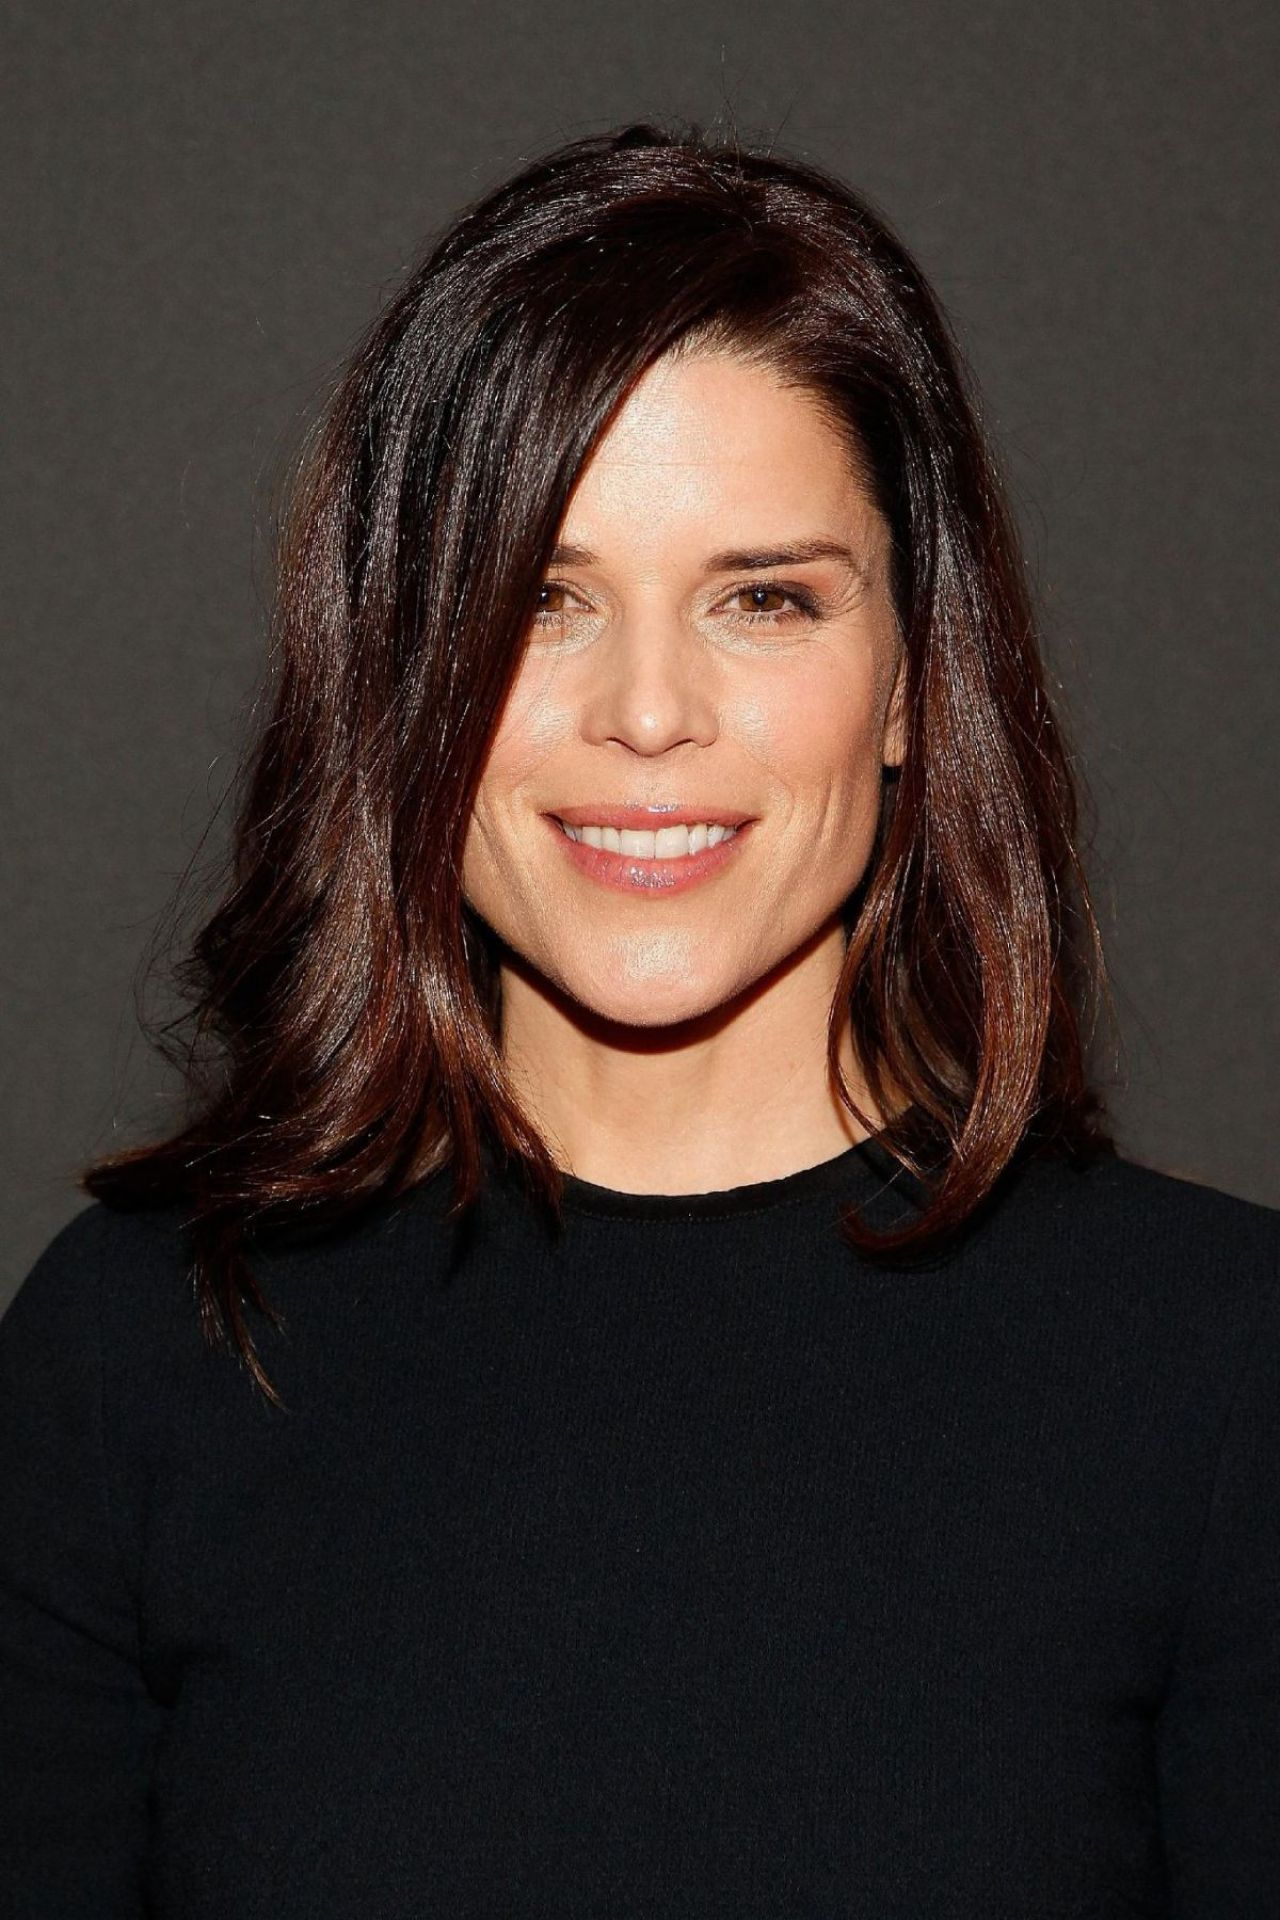 Nude Pics Of Neve Campbell 22